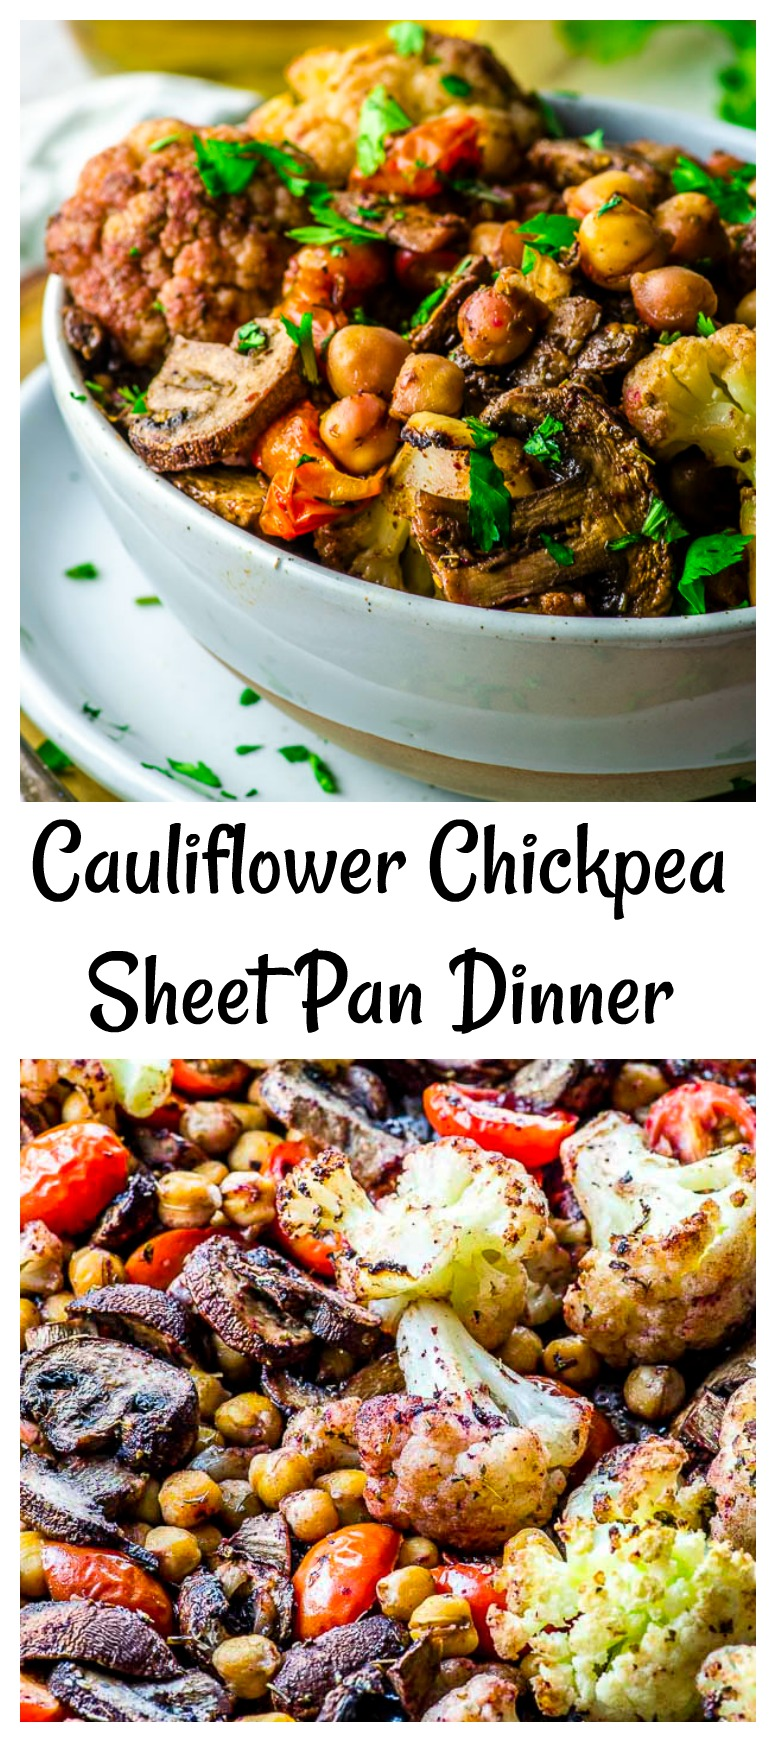 Love sheet pan dinners? So do we! 5 minute of prep time, 30 minutes in the oven, and done. And the combinations are endless! We see a lot of these in our future... We're starting with a Vegan Cauliflower Chickpea Sheet Pan Dinner that packs so much flavor, it will knock your socks off.